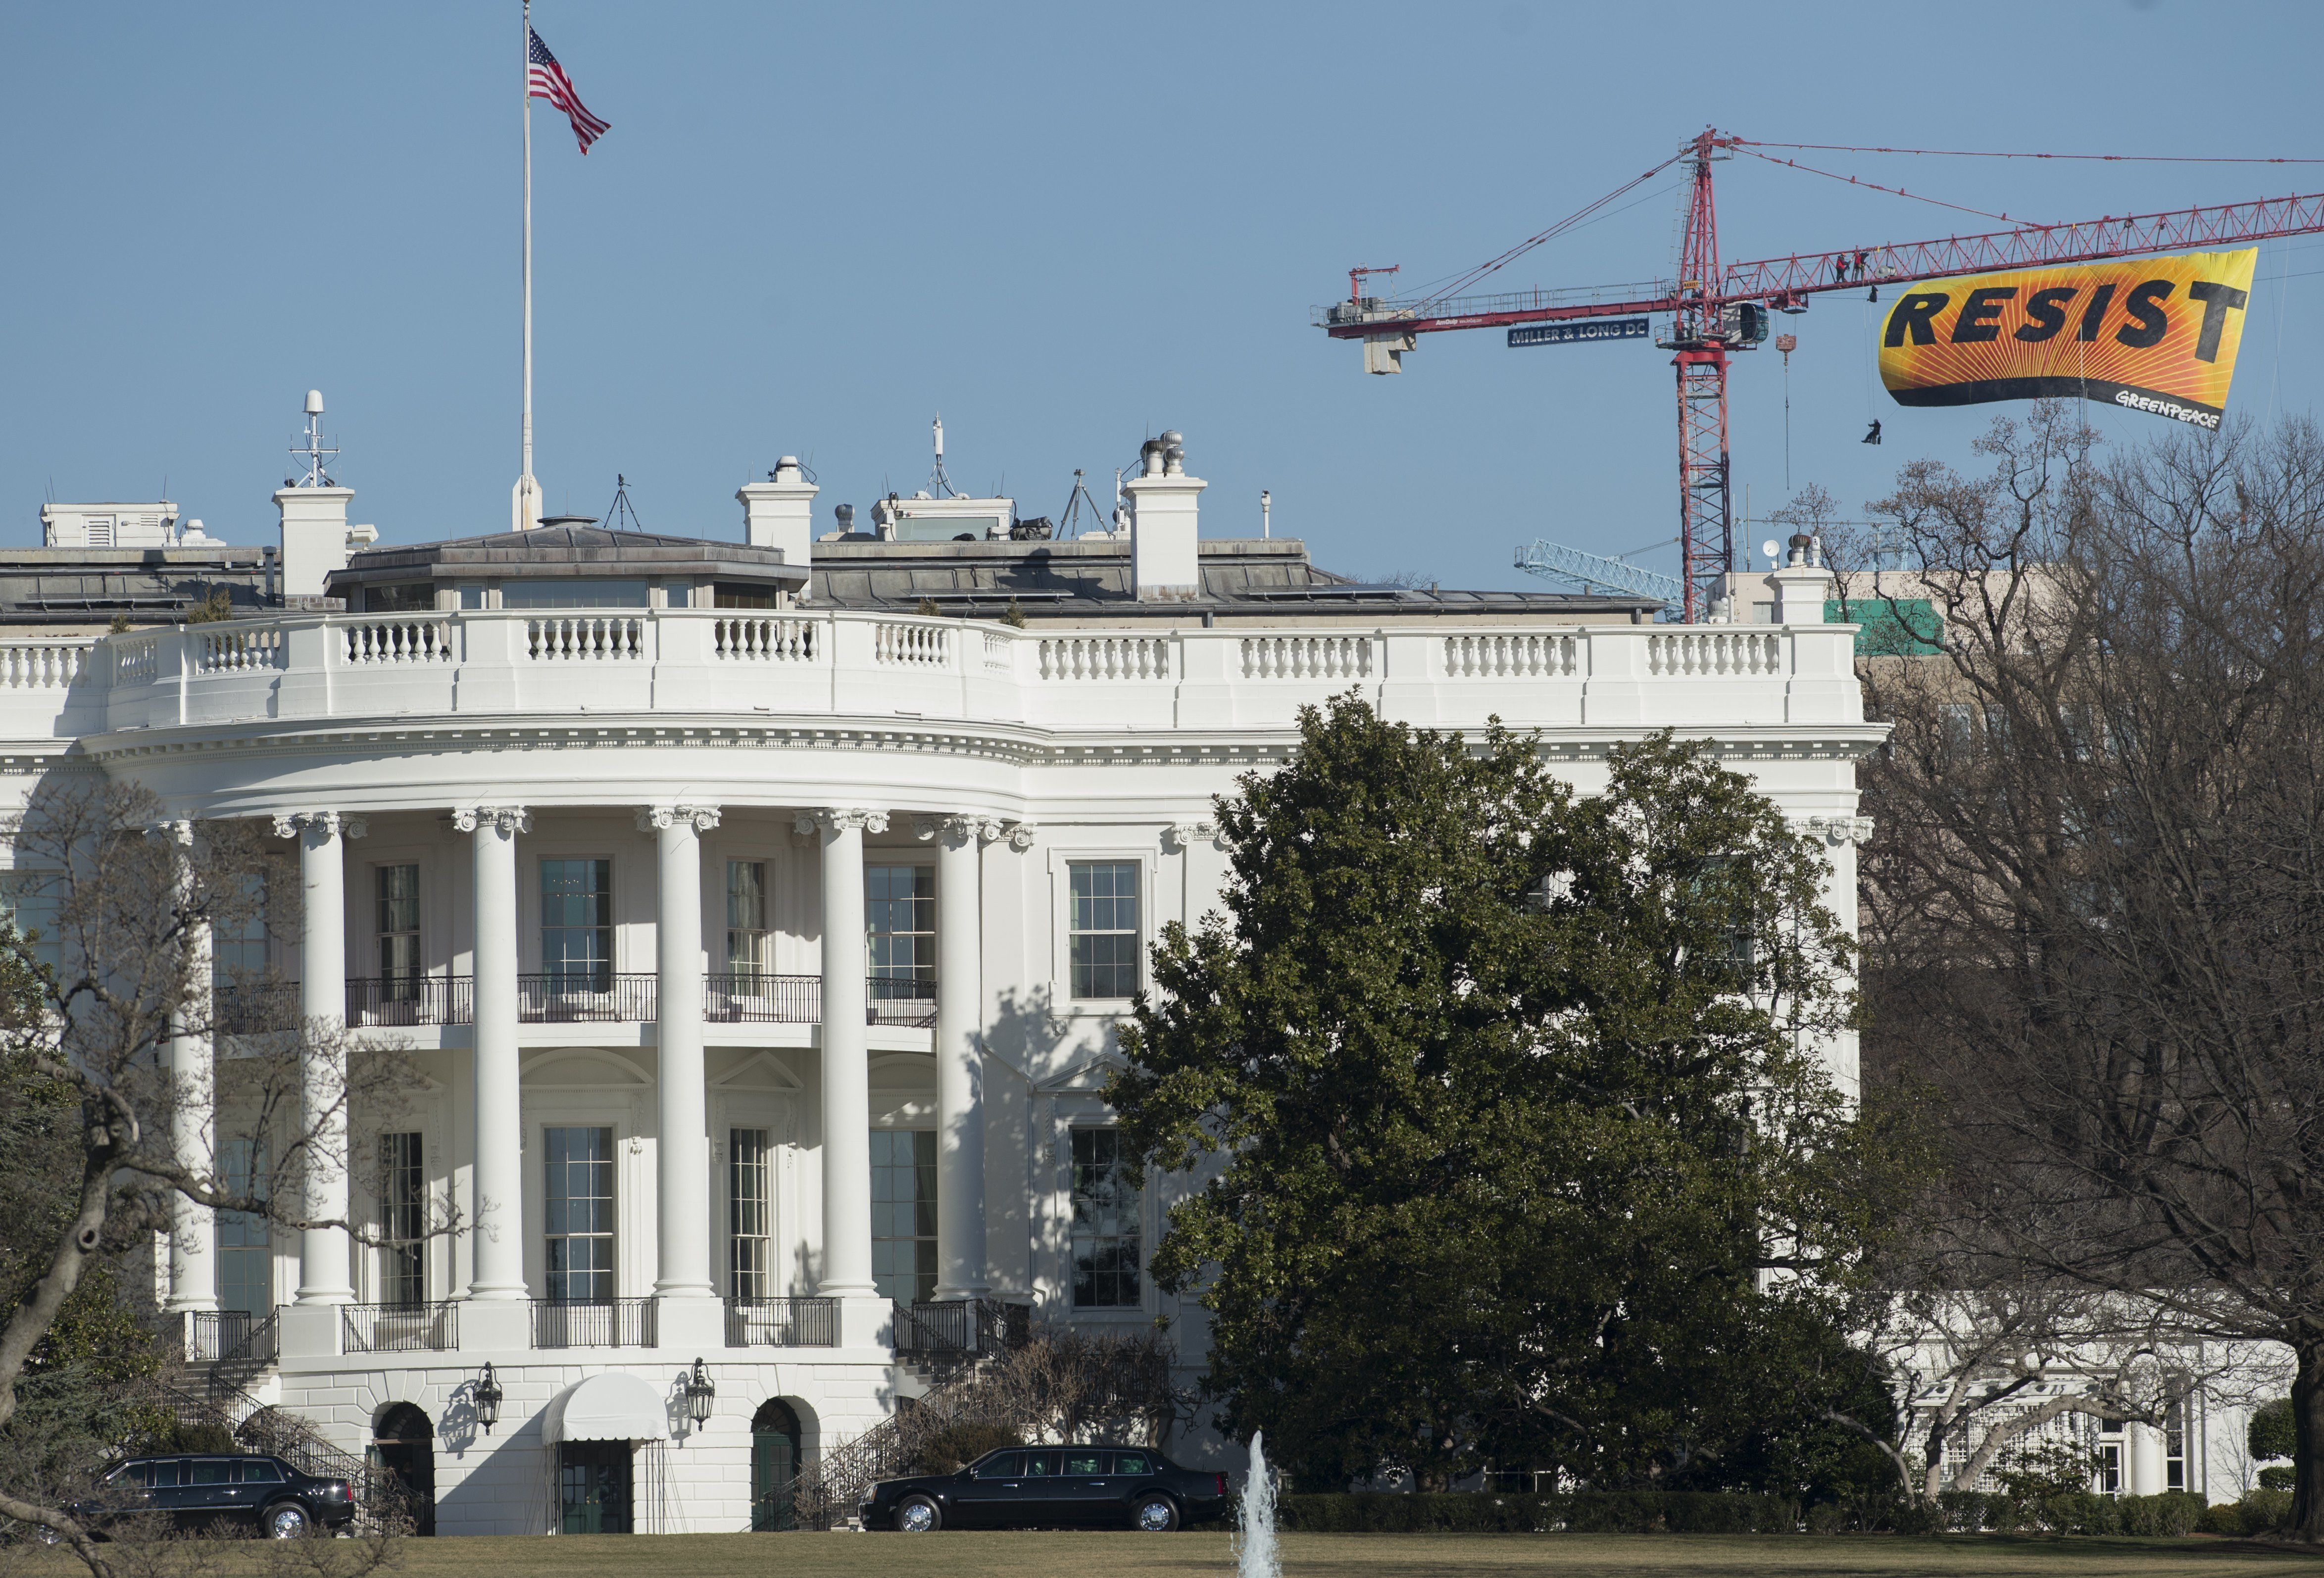 Greenpeace protesters unfold a banner reading 'Resist' from atop a construction crane January 25, 2017 in Washington, DC. The banner, flying high enough to be seen from the White House, is in opposition to the policies of President Donald Trump. / AFP / SAUL LOEB        (Photo credit should read SAUL LOEB/AFP/Getty Images)